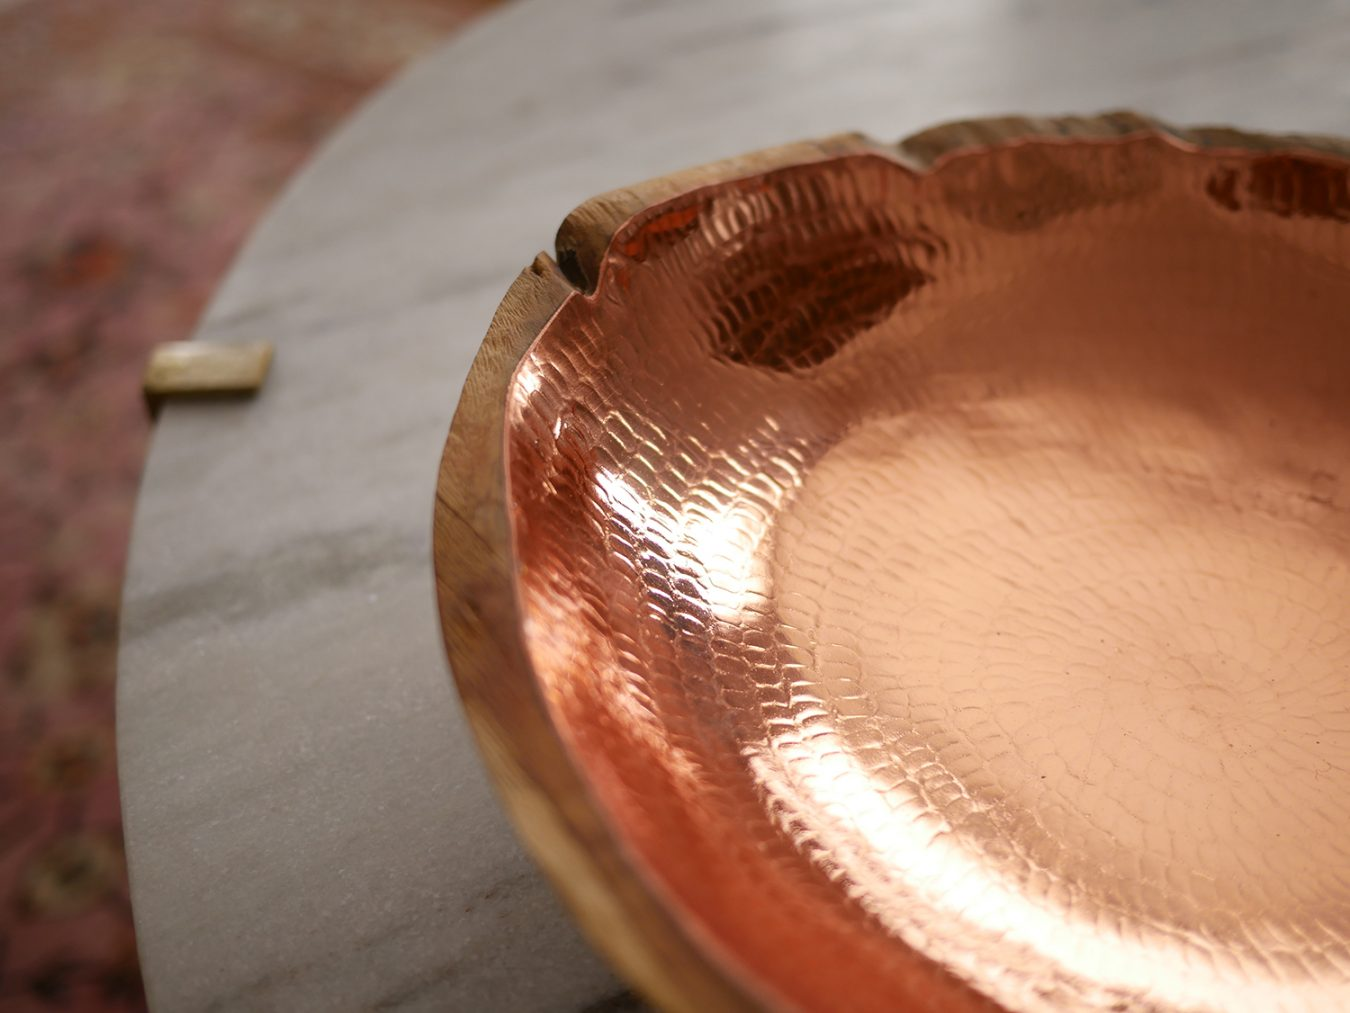 interior-design-styling-residential-luxury-copper-brass-lined-wood-bowl-detailing-finishes-metalic-marble-top-dish